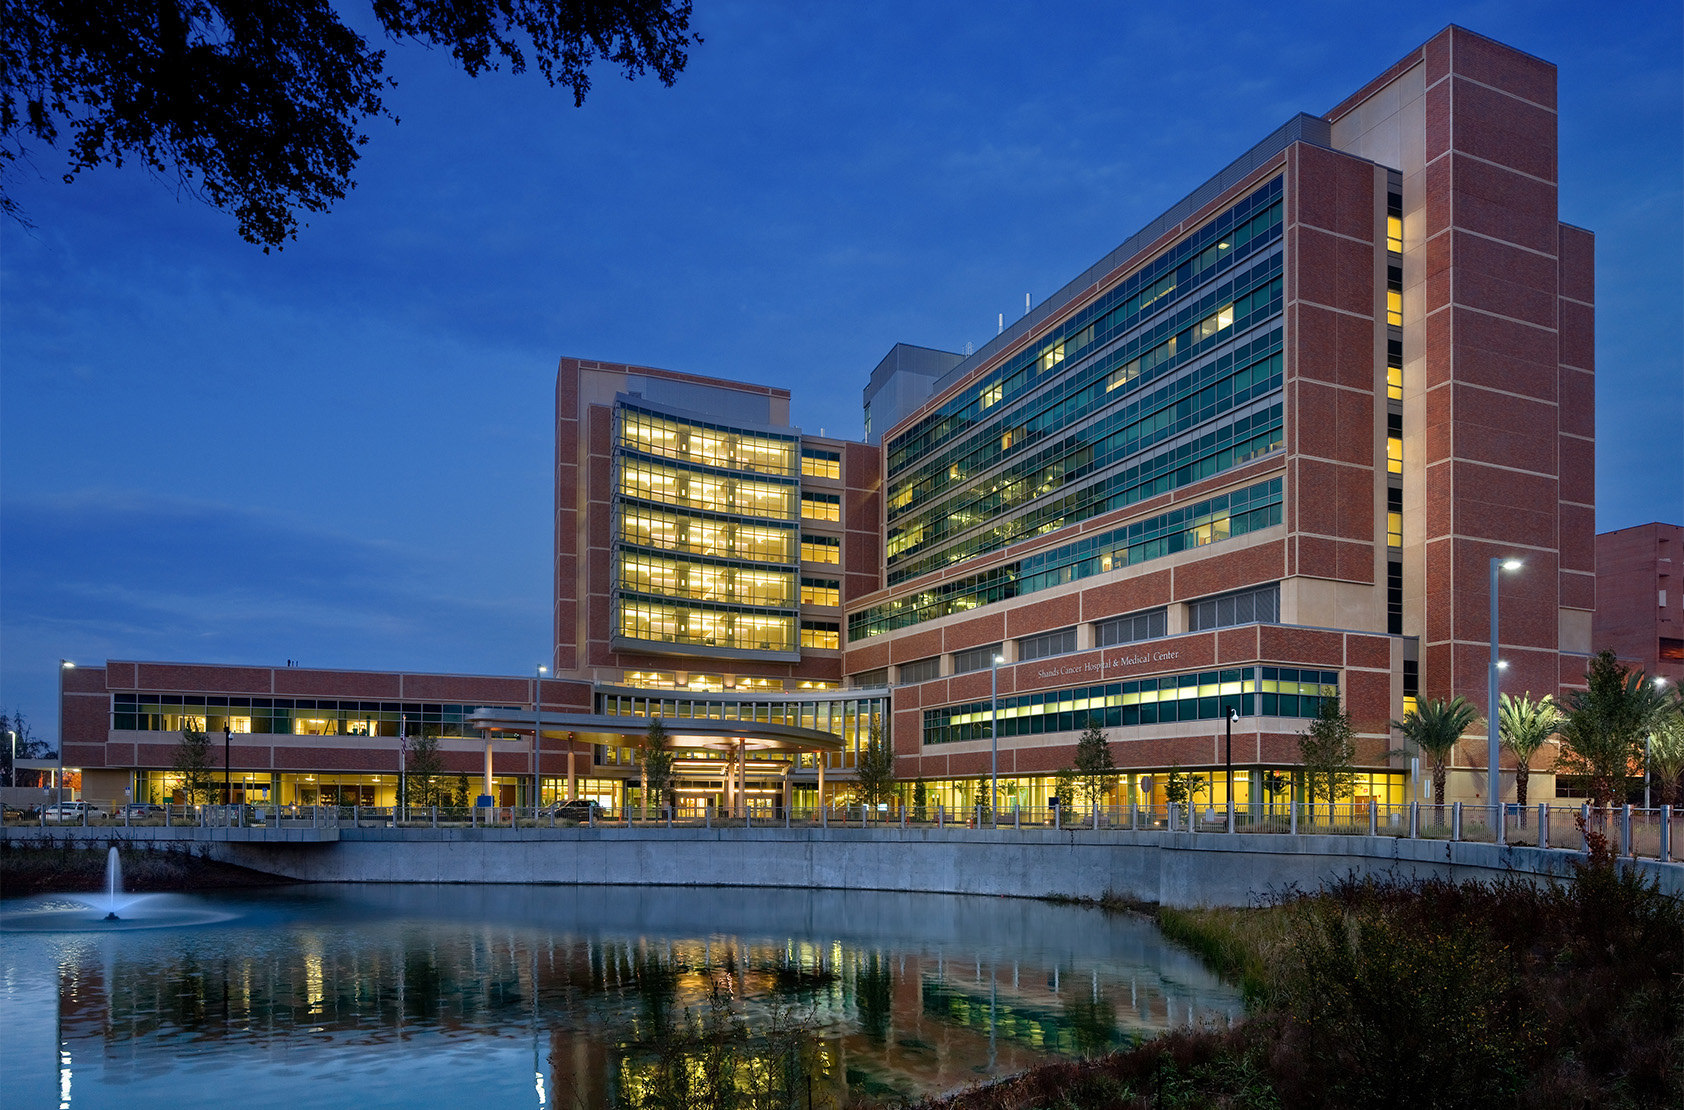 UF Health - Cancer Hospital